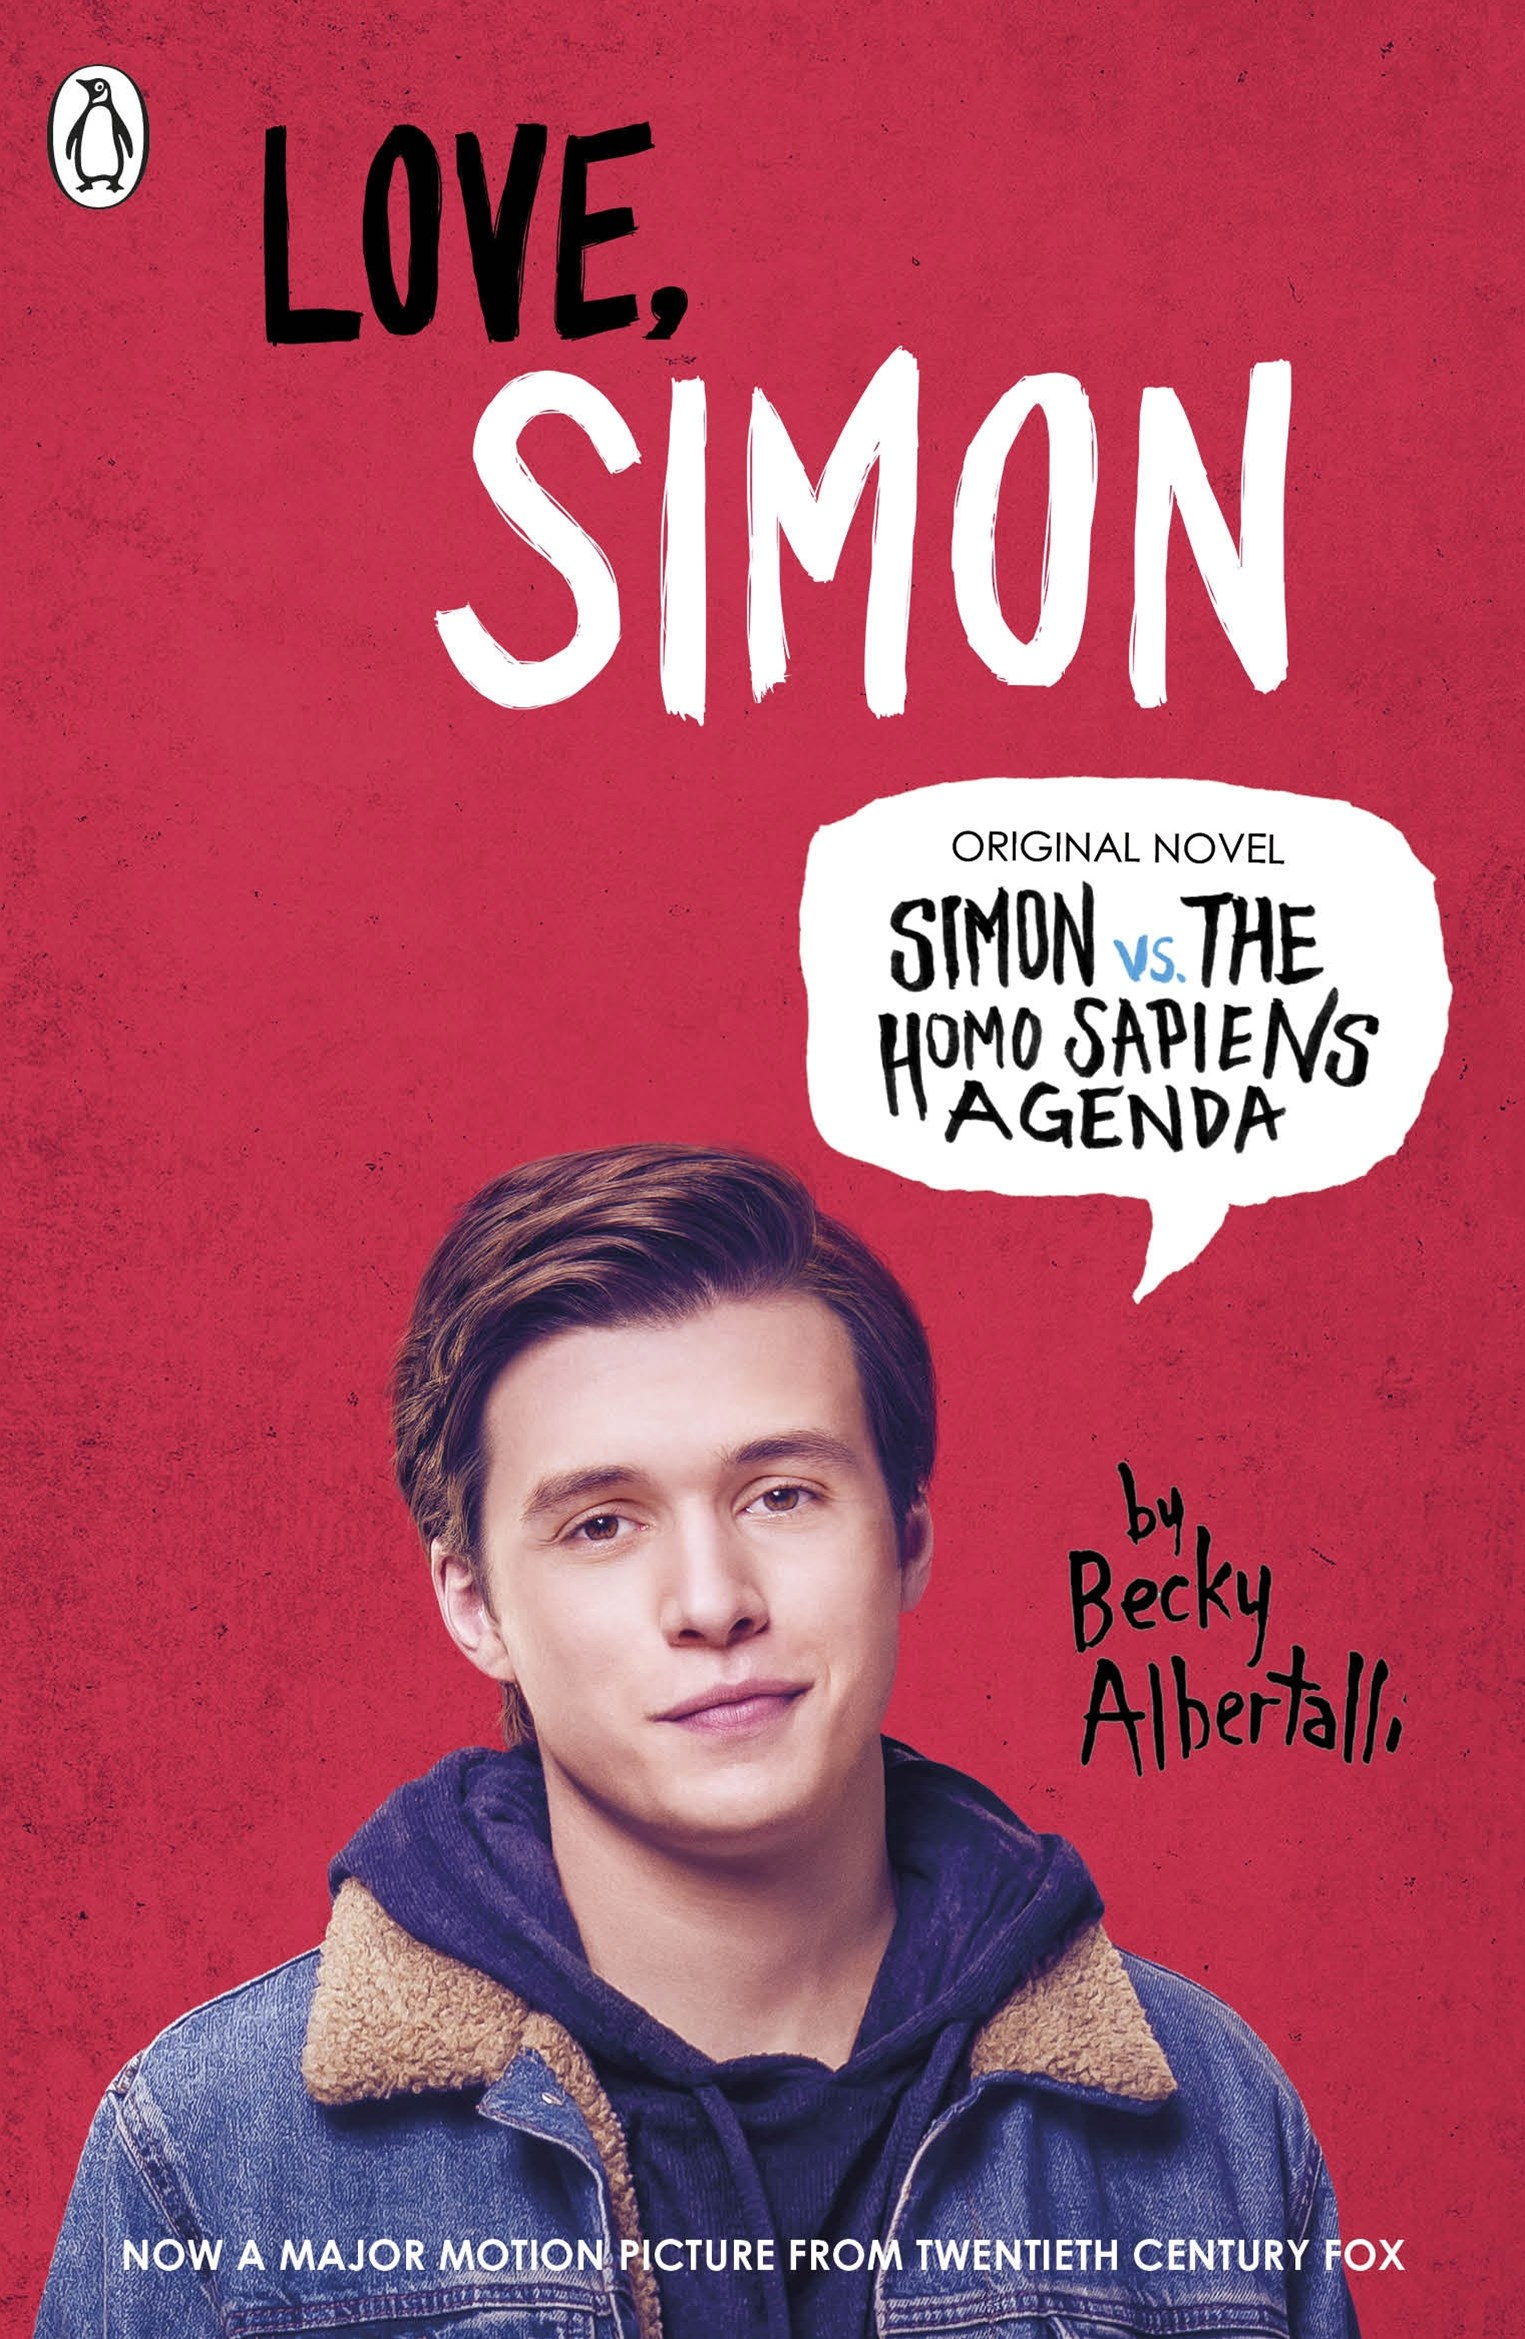 Love, Simon: Simon Vs The Home Sapiens Agenda Official Film Tie-in